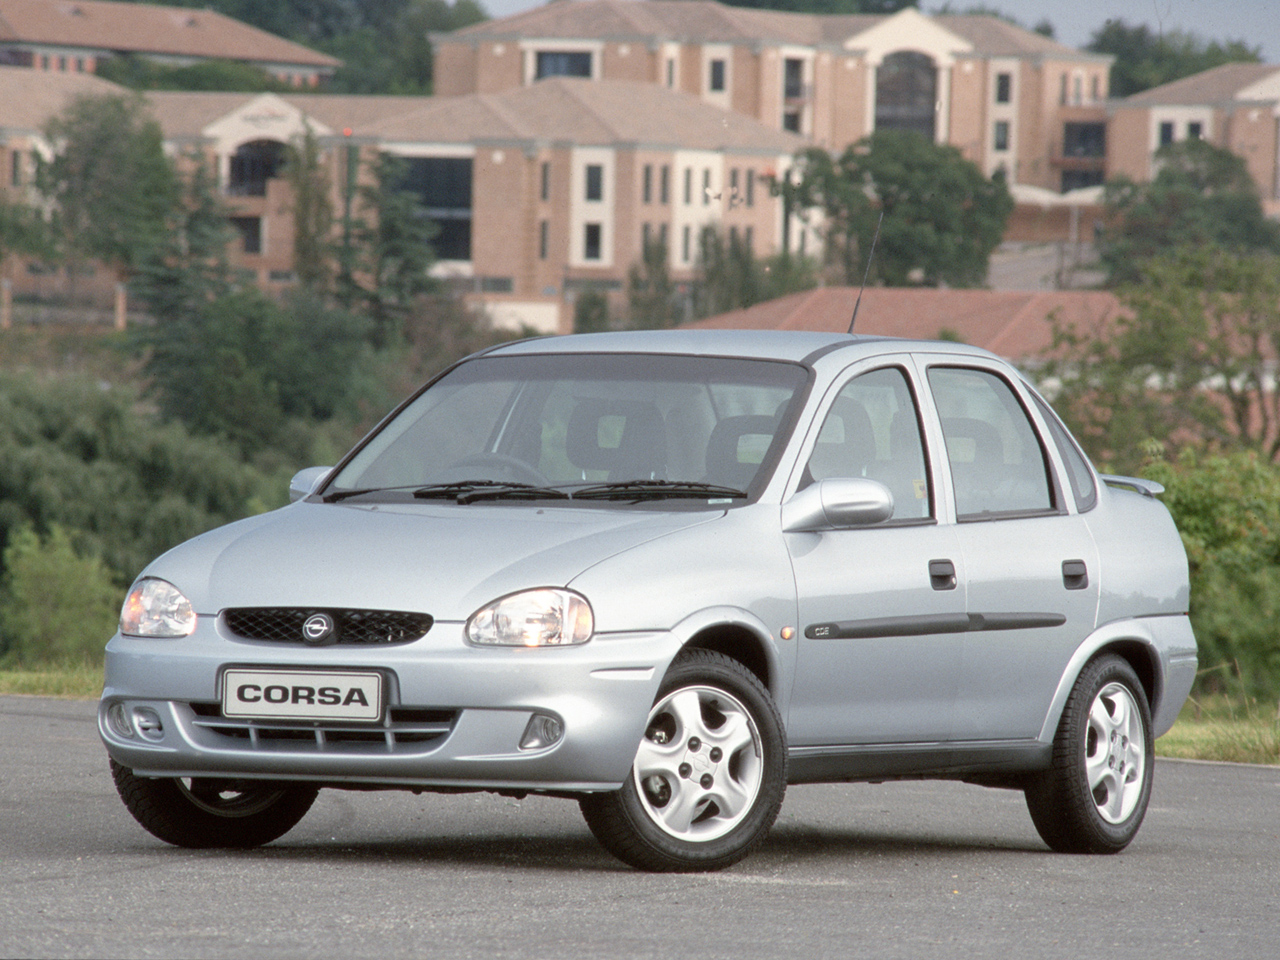 opel corsa 1 2 1998 technical specifications interior and exterior photo. Black Bedroom Furniture Sets. Home Design Ideas